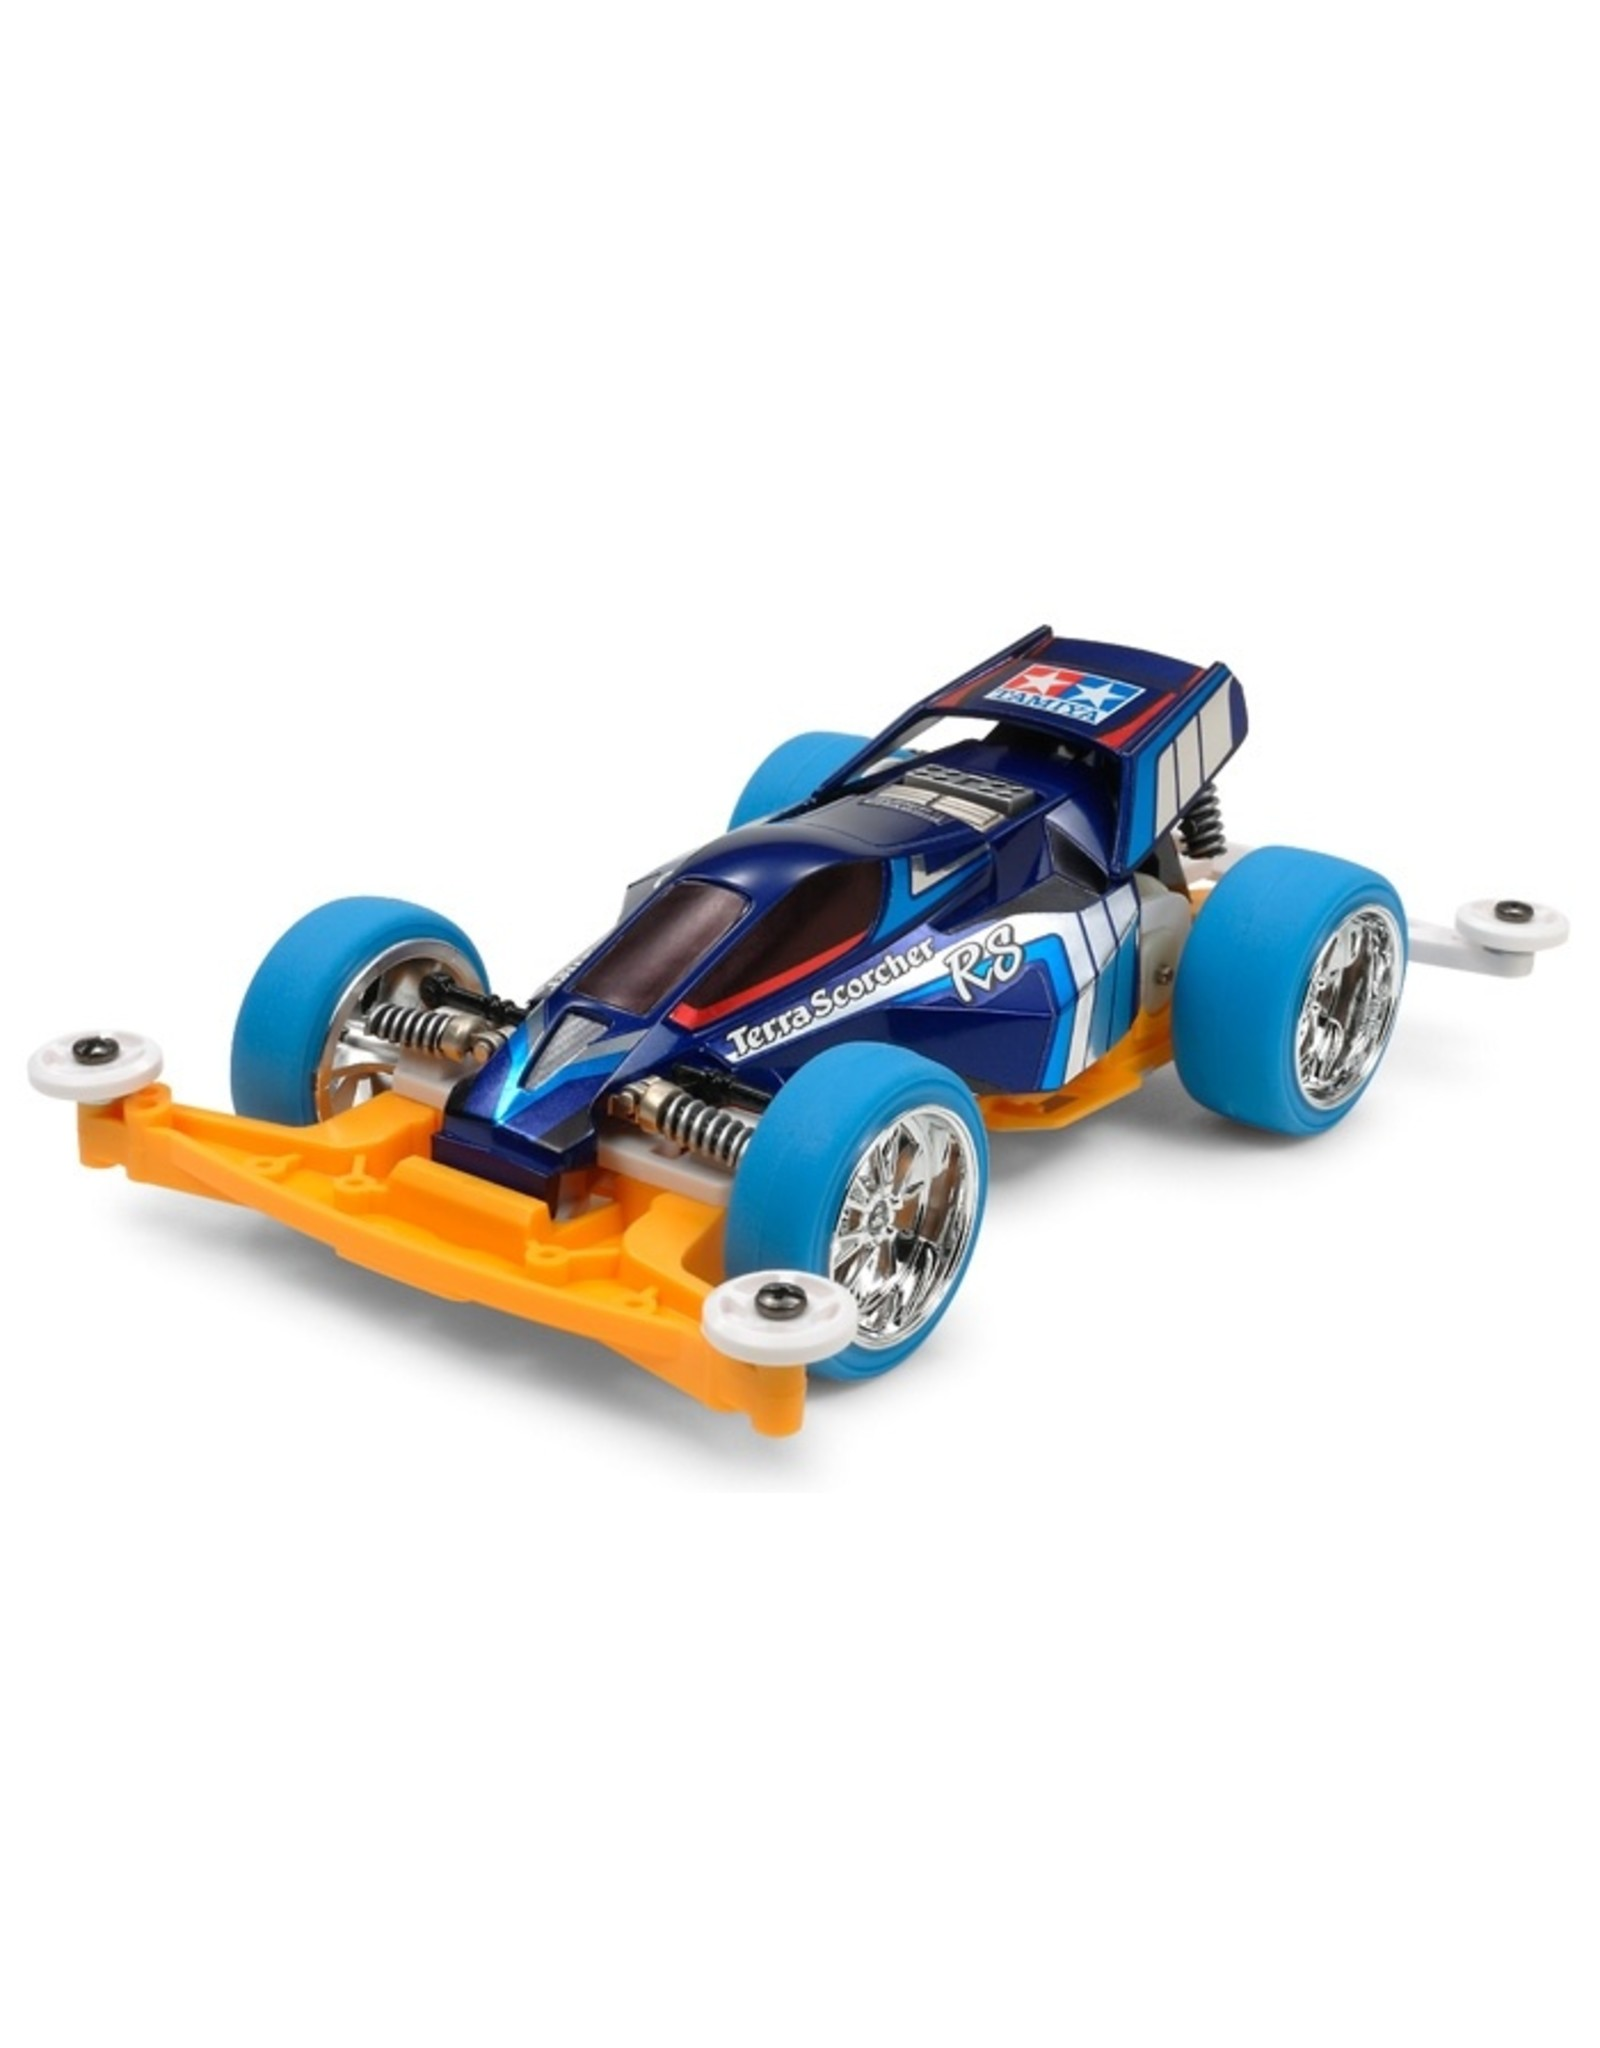 Tamiya Terra Scorcher RS - Super II Chassis - FULLY-BUILT